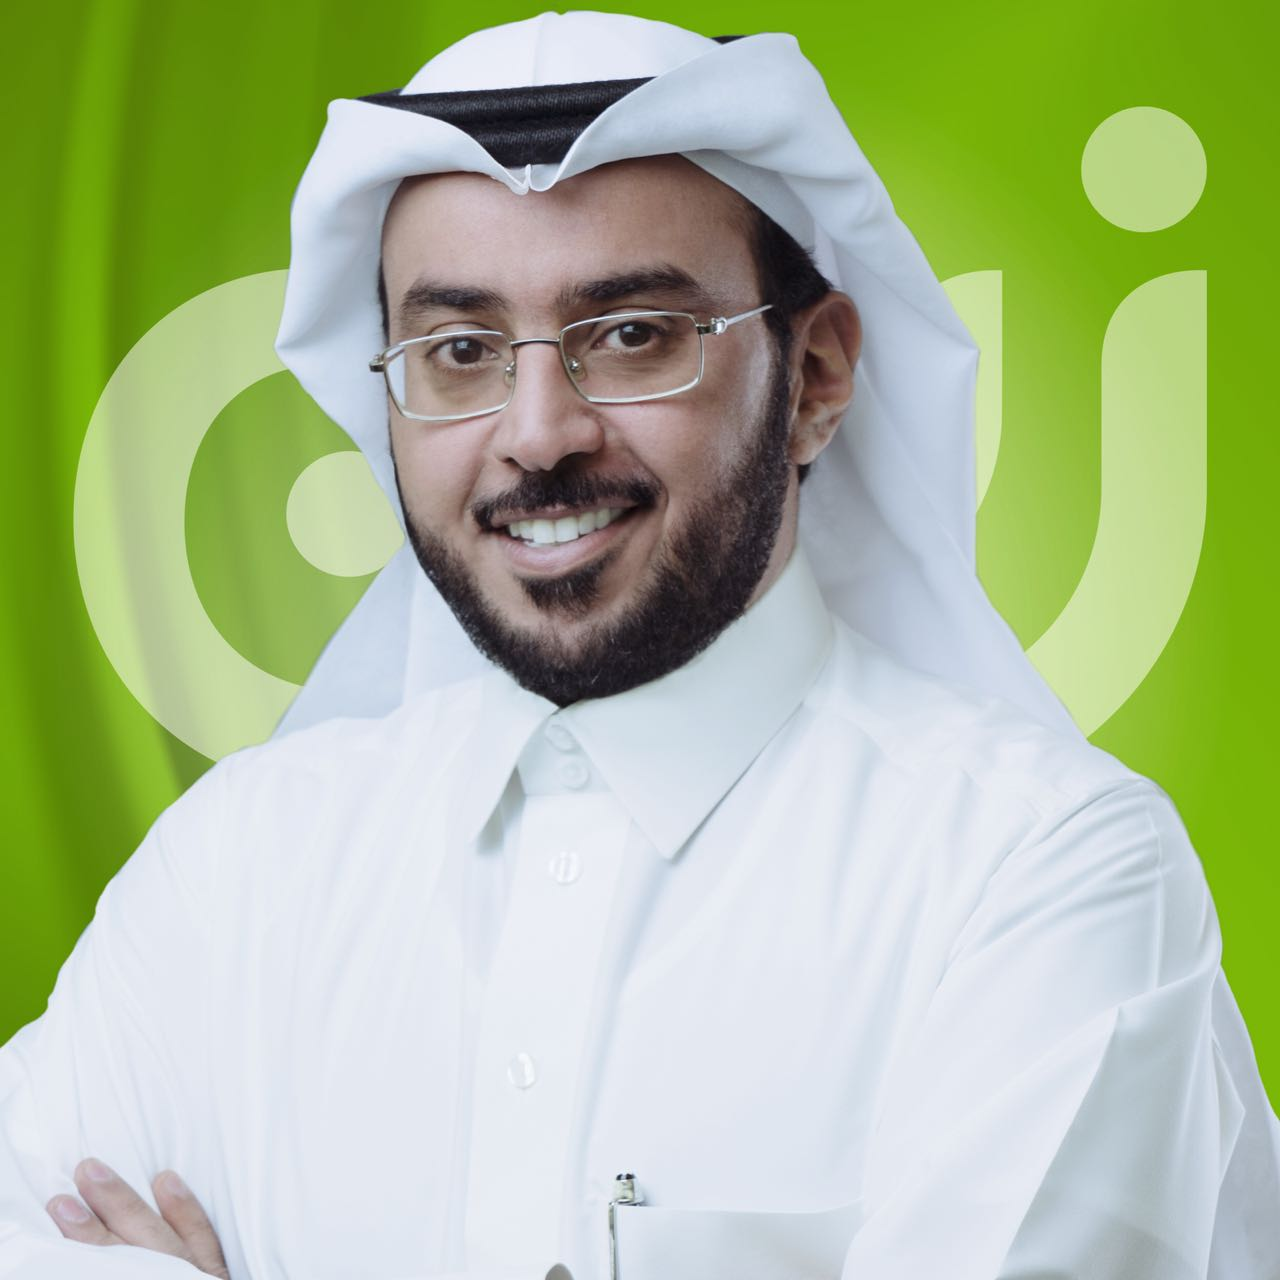 Official picture - CEO (2)